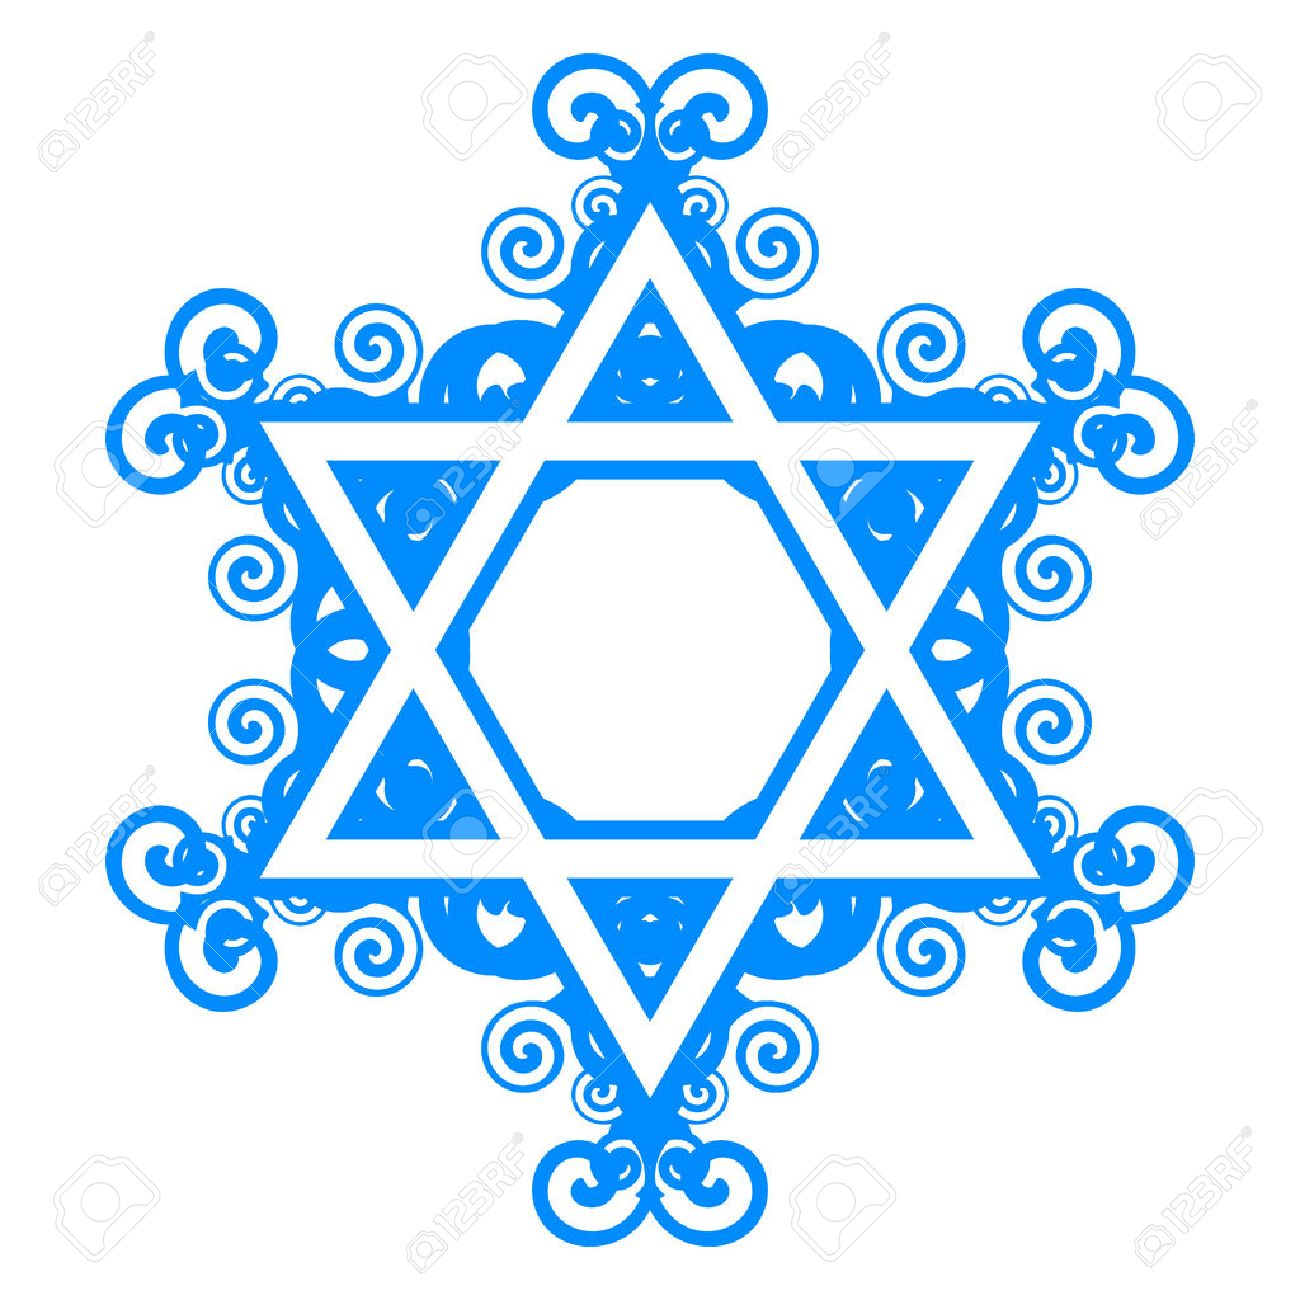 Star of david stock photos royalty free business images vector star of david with floral decorations biocorpaavc Gallery